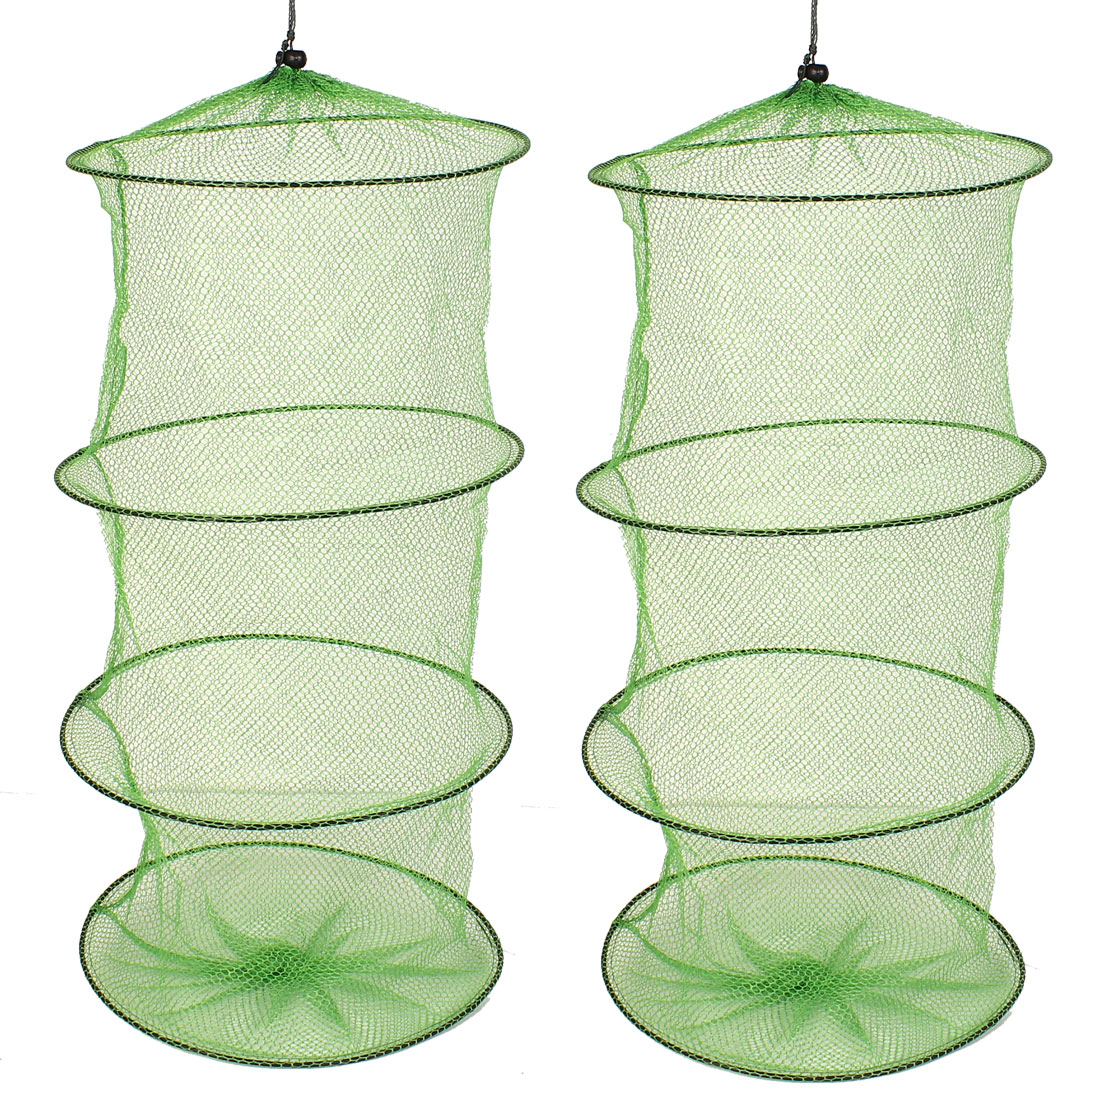 2 Pcs 26 Inch Green Crab Crawfish Lobster Folding Collapsible Outdoor Camping Fishing Cage Fishing Net